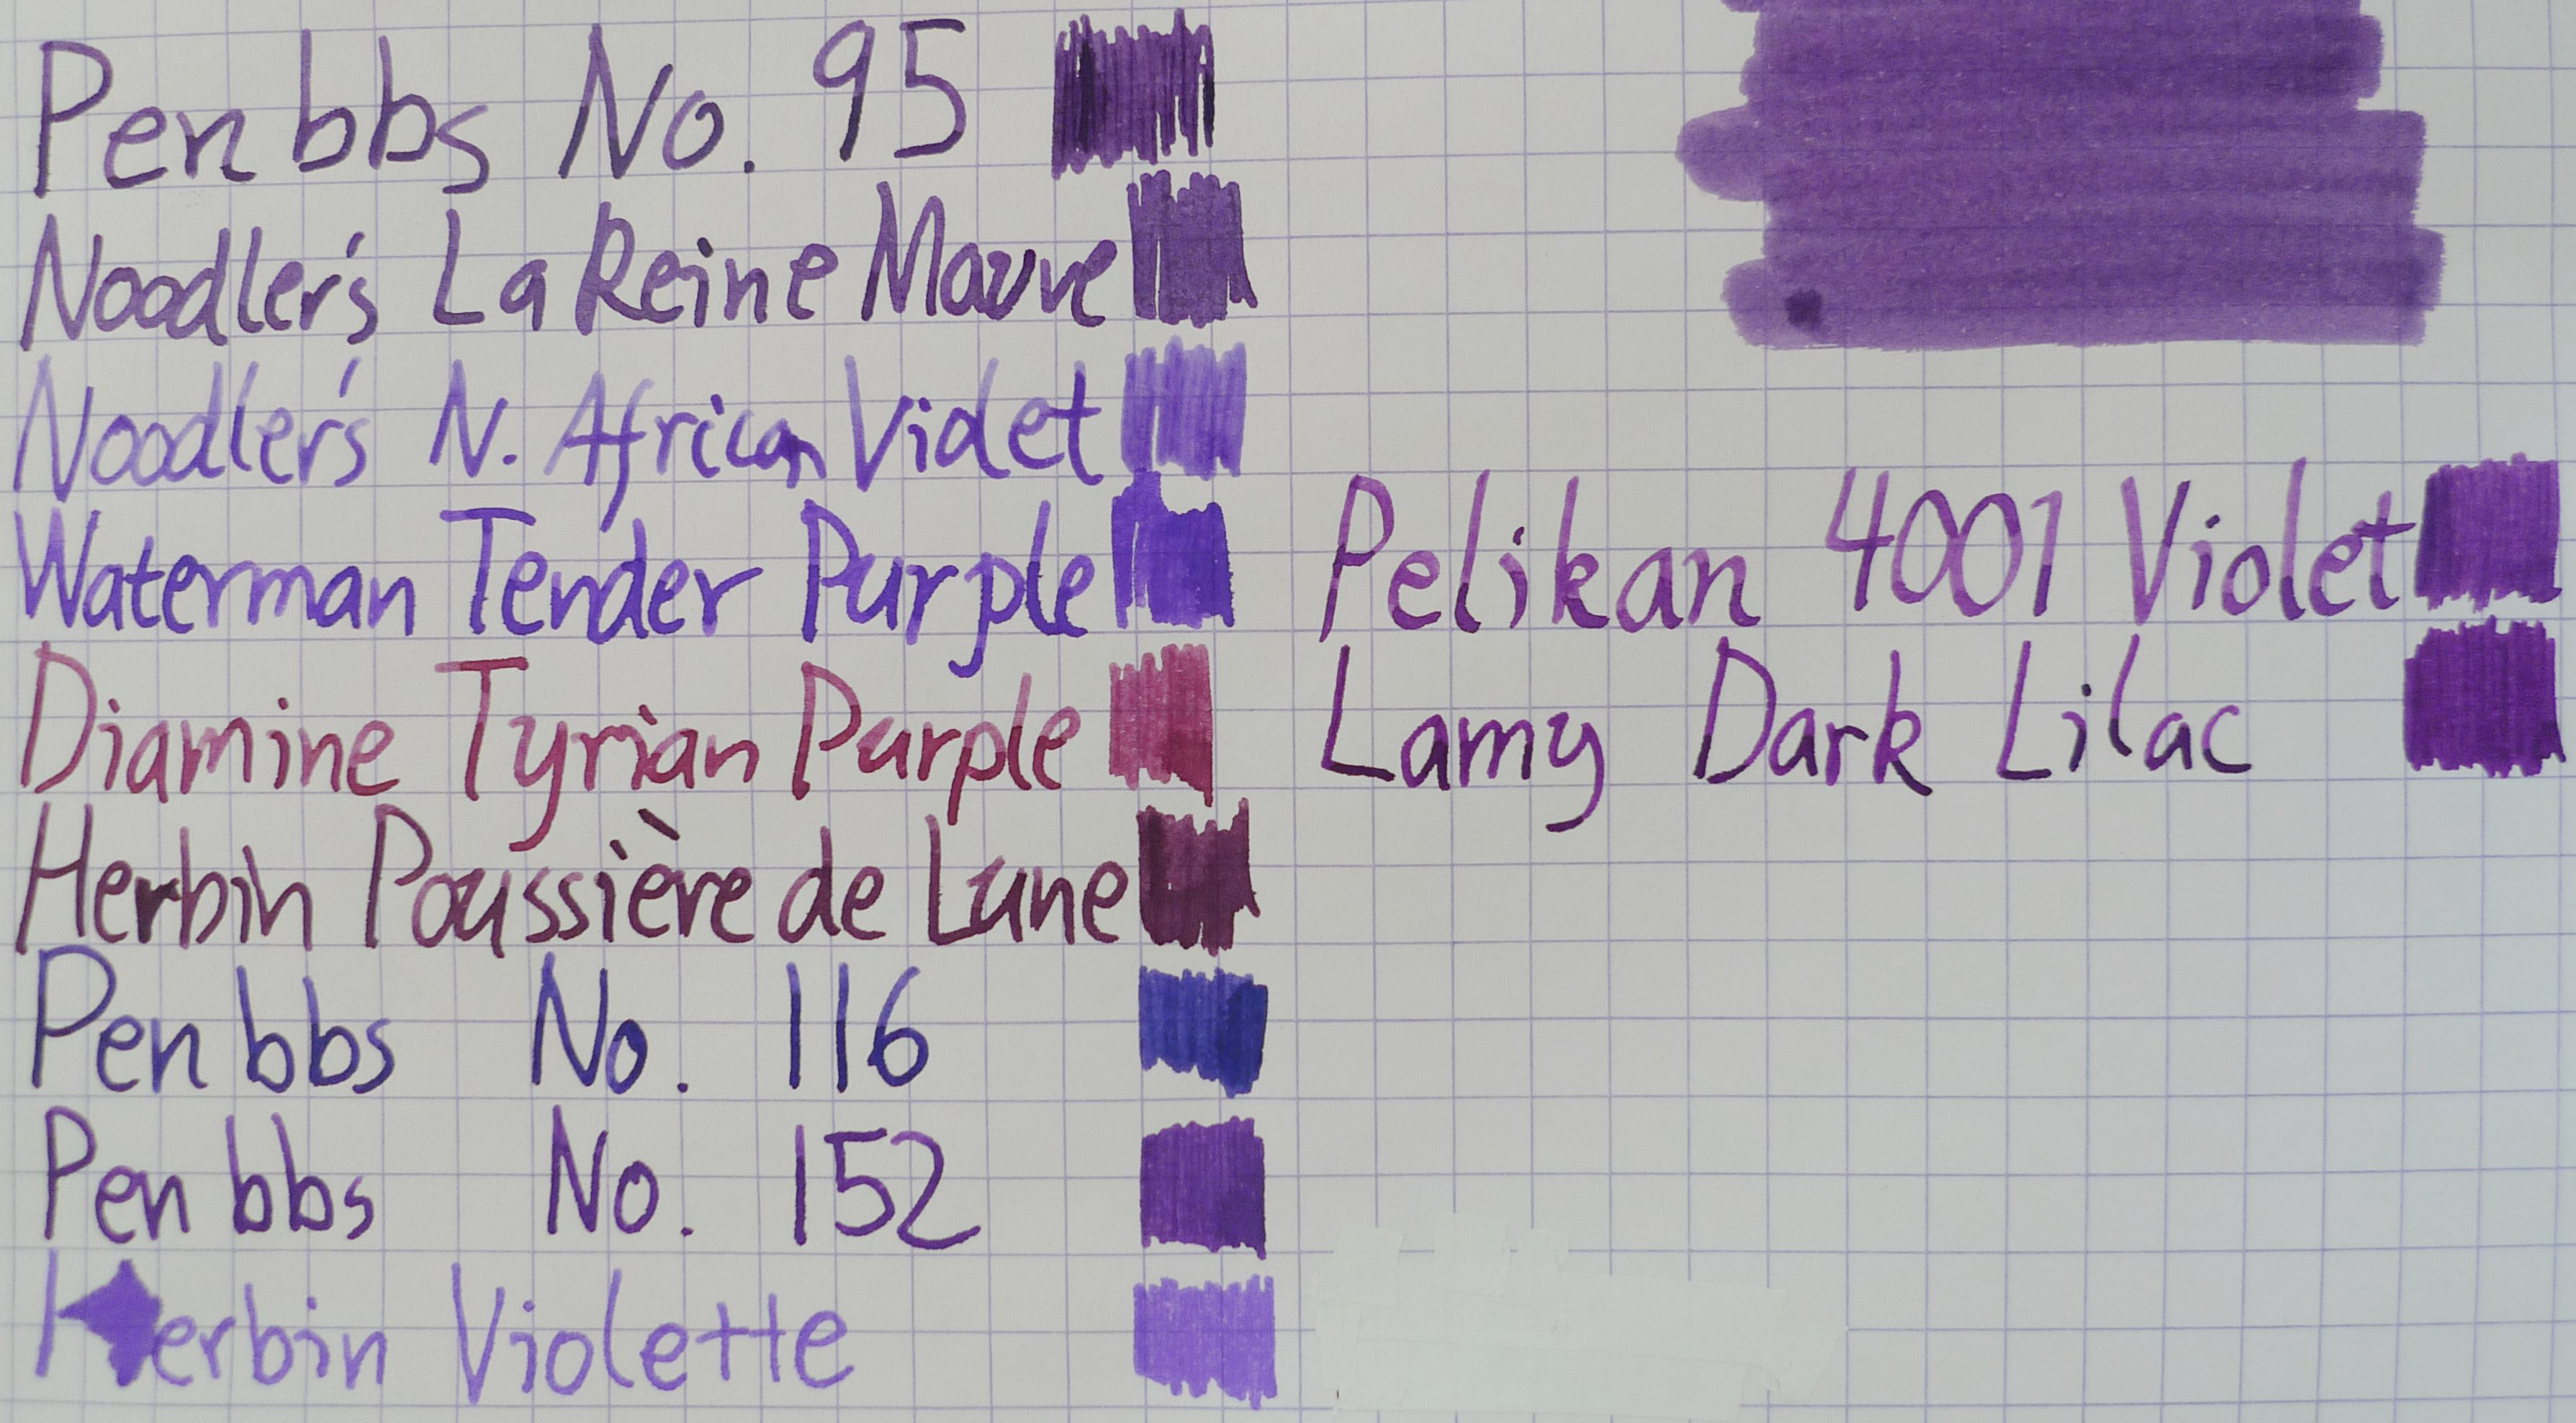 fpn_1488356124__penbbs_purples_compariso